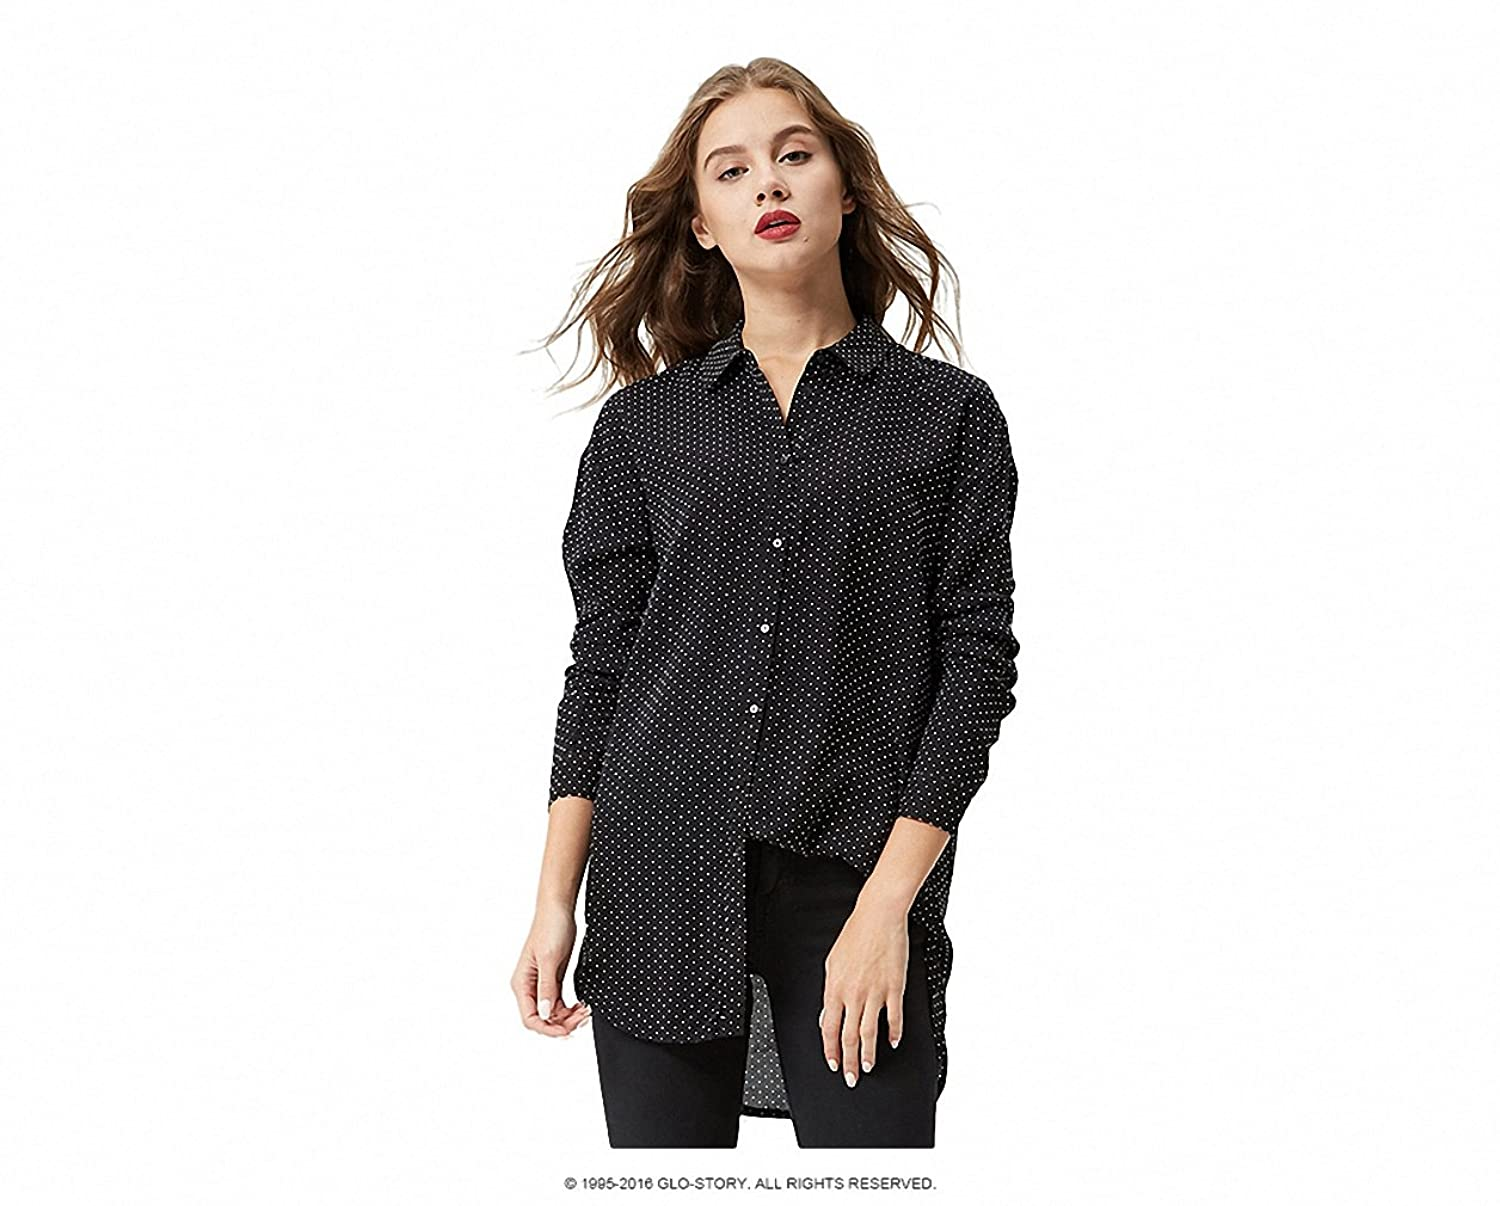 Women Polka Dot Printed Long Sleeve blouse casual shirts Loose cotton tops blusas WCS-3664 at Amazon Womens Clothing store: